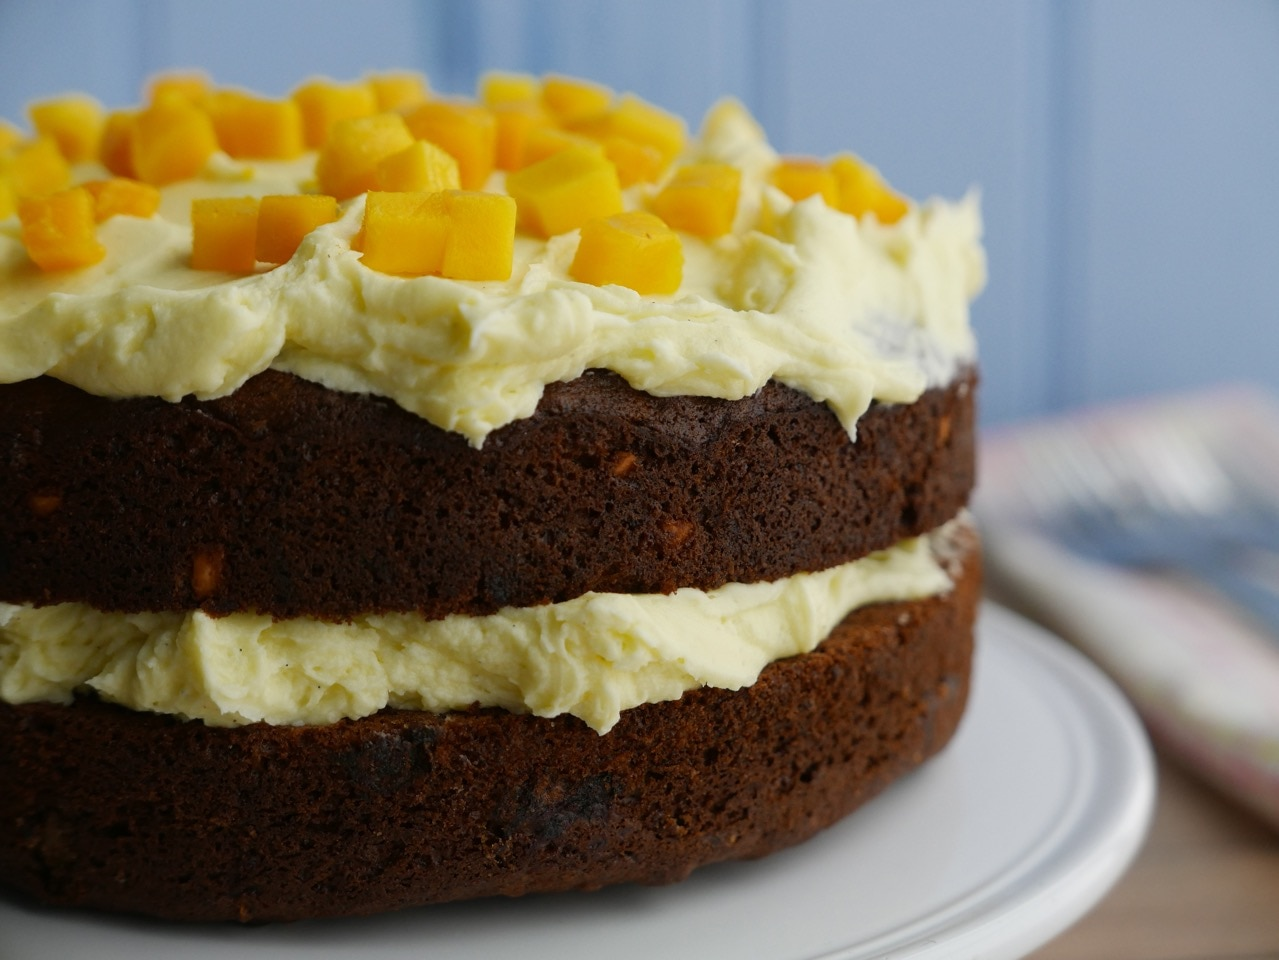 Banana Peanut Butter Cake with Mango Icing